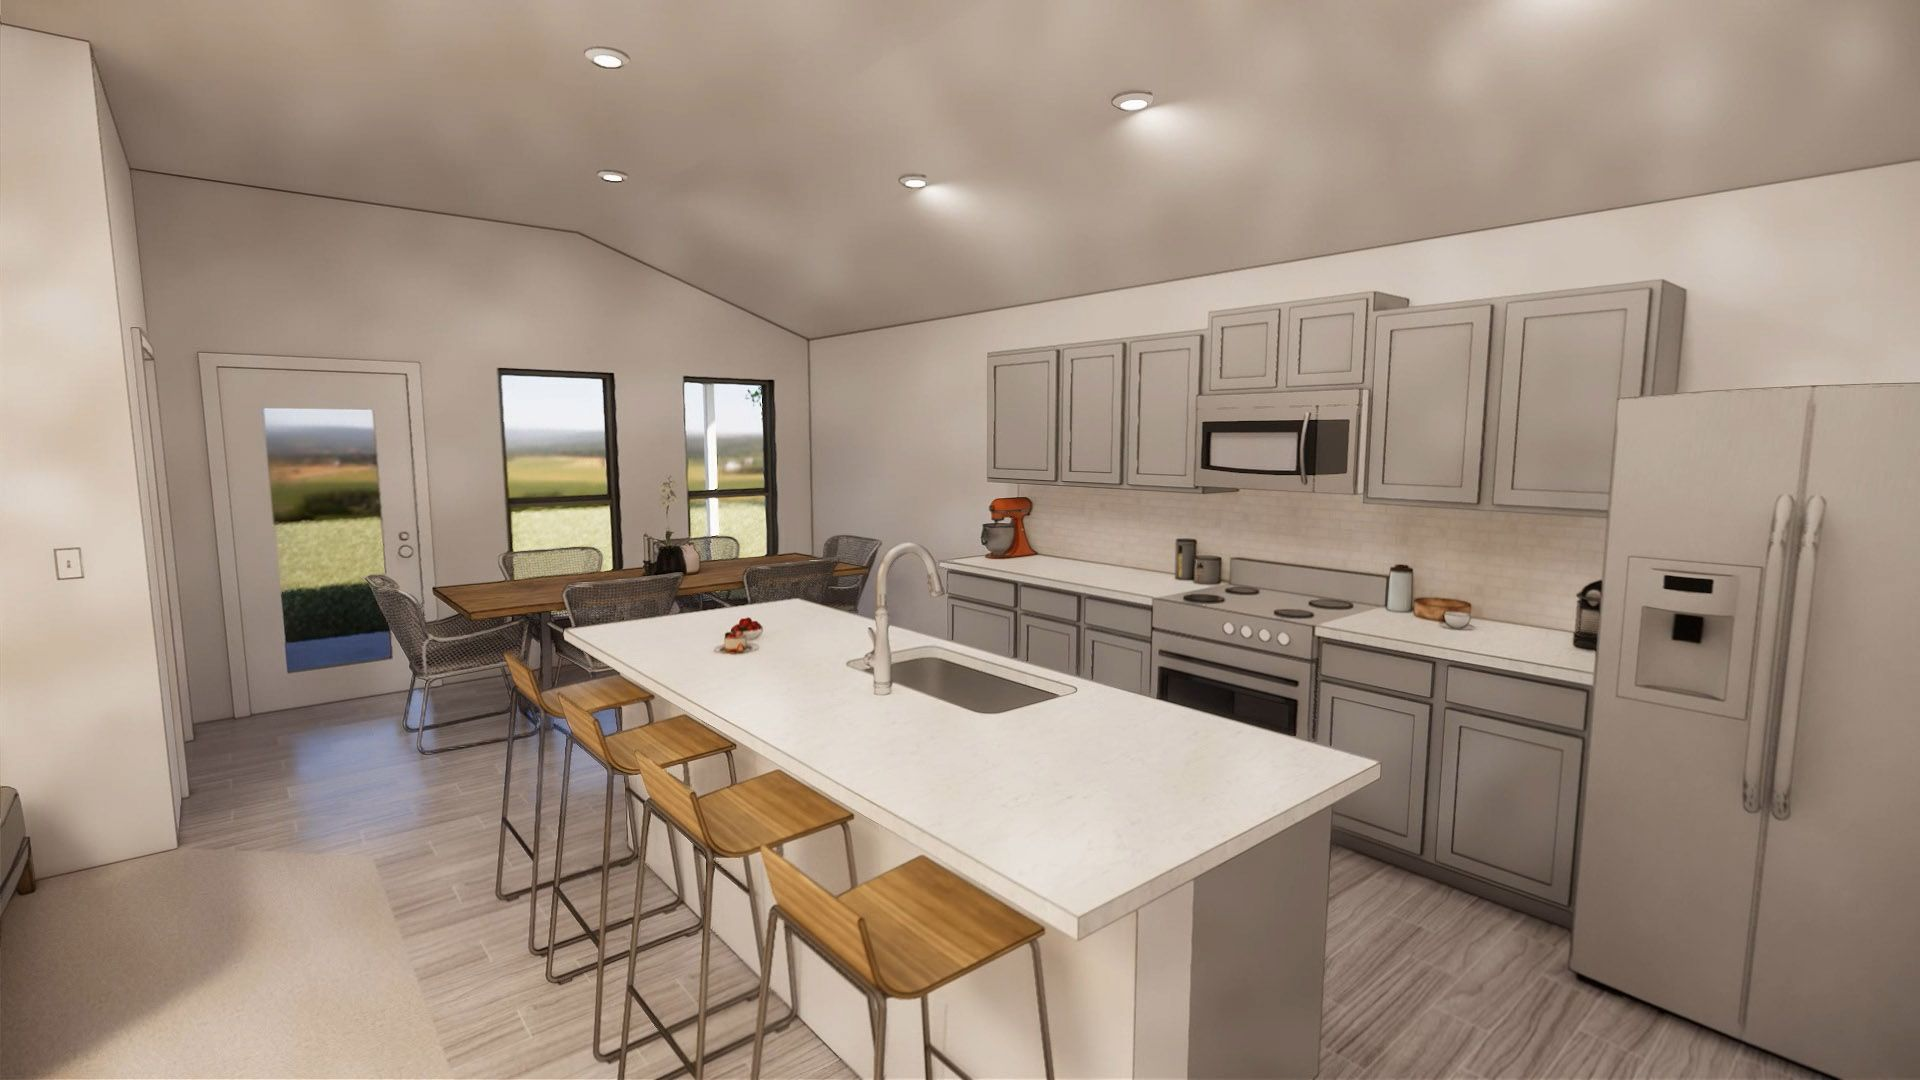 Kitchen featured in the Adalynn By Betenbough Homes in Amarillo, TX